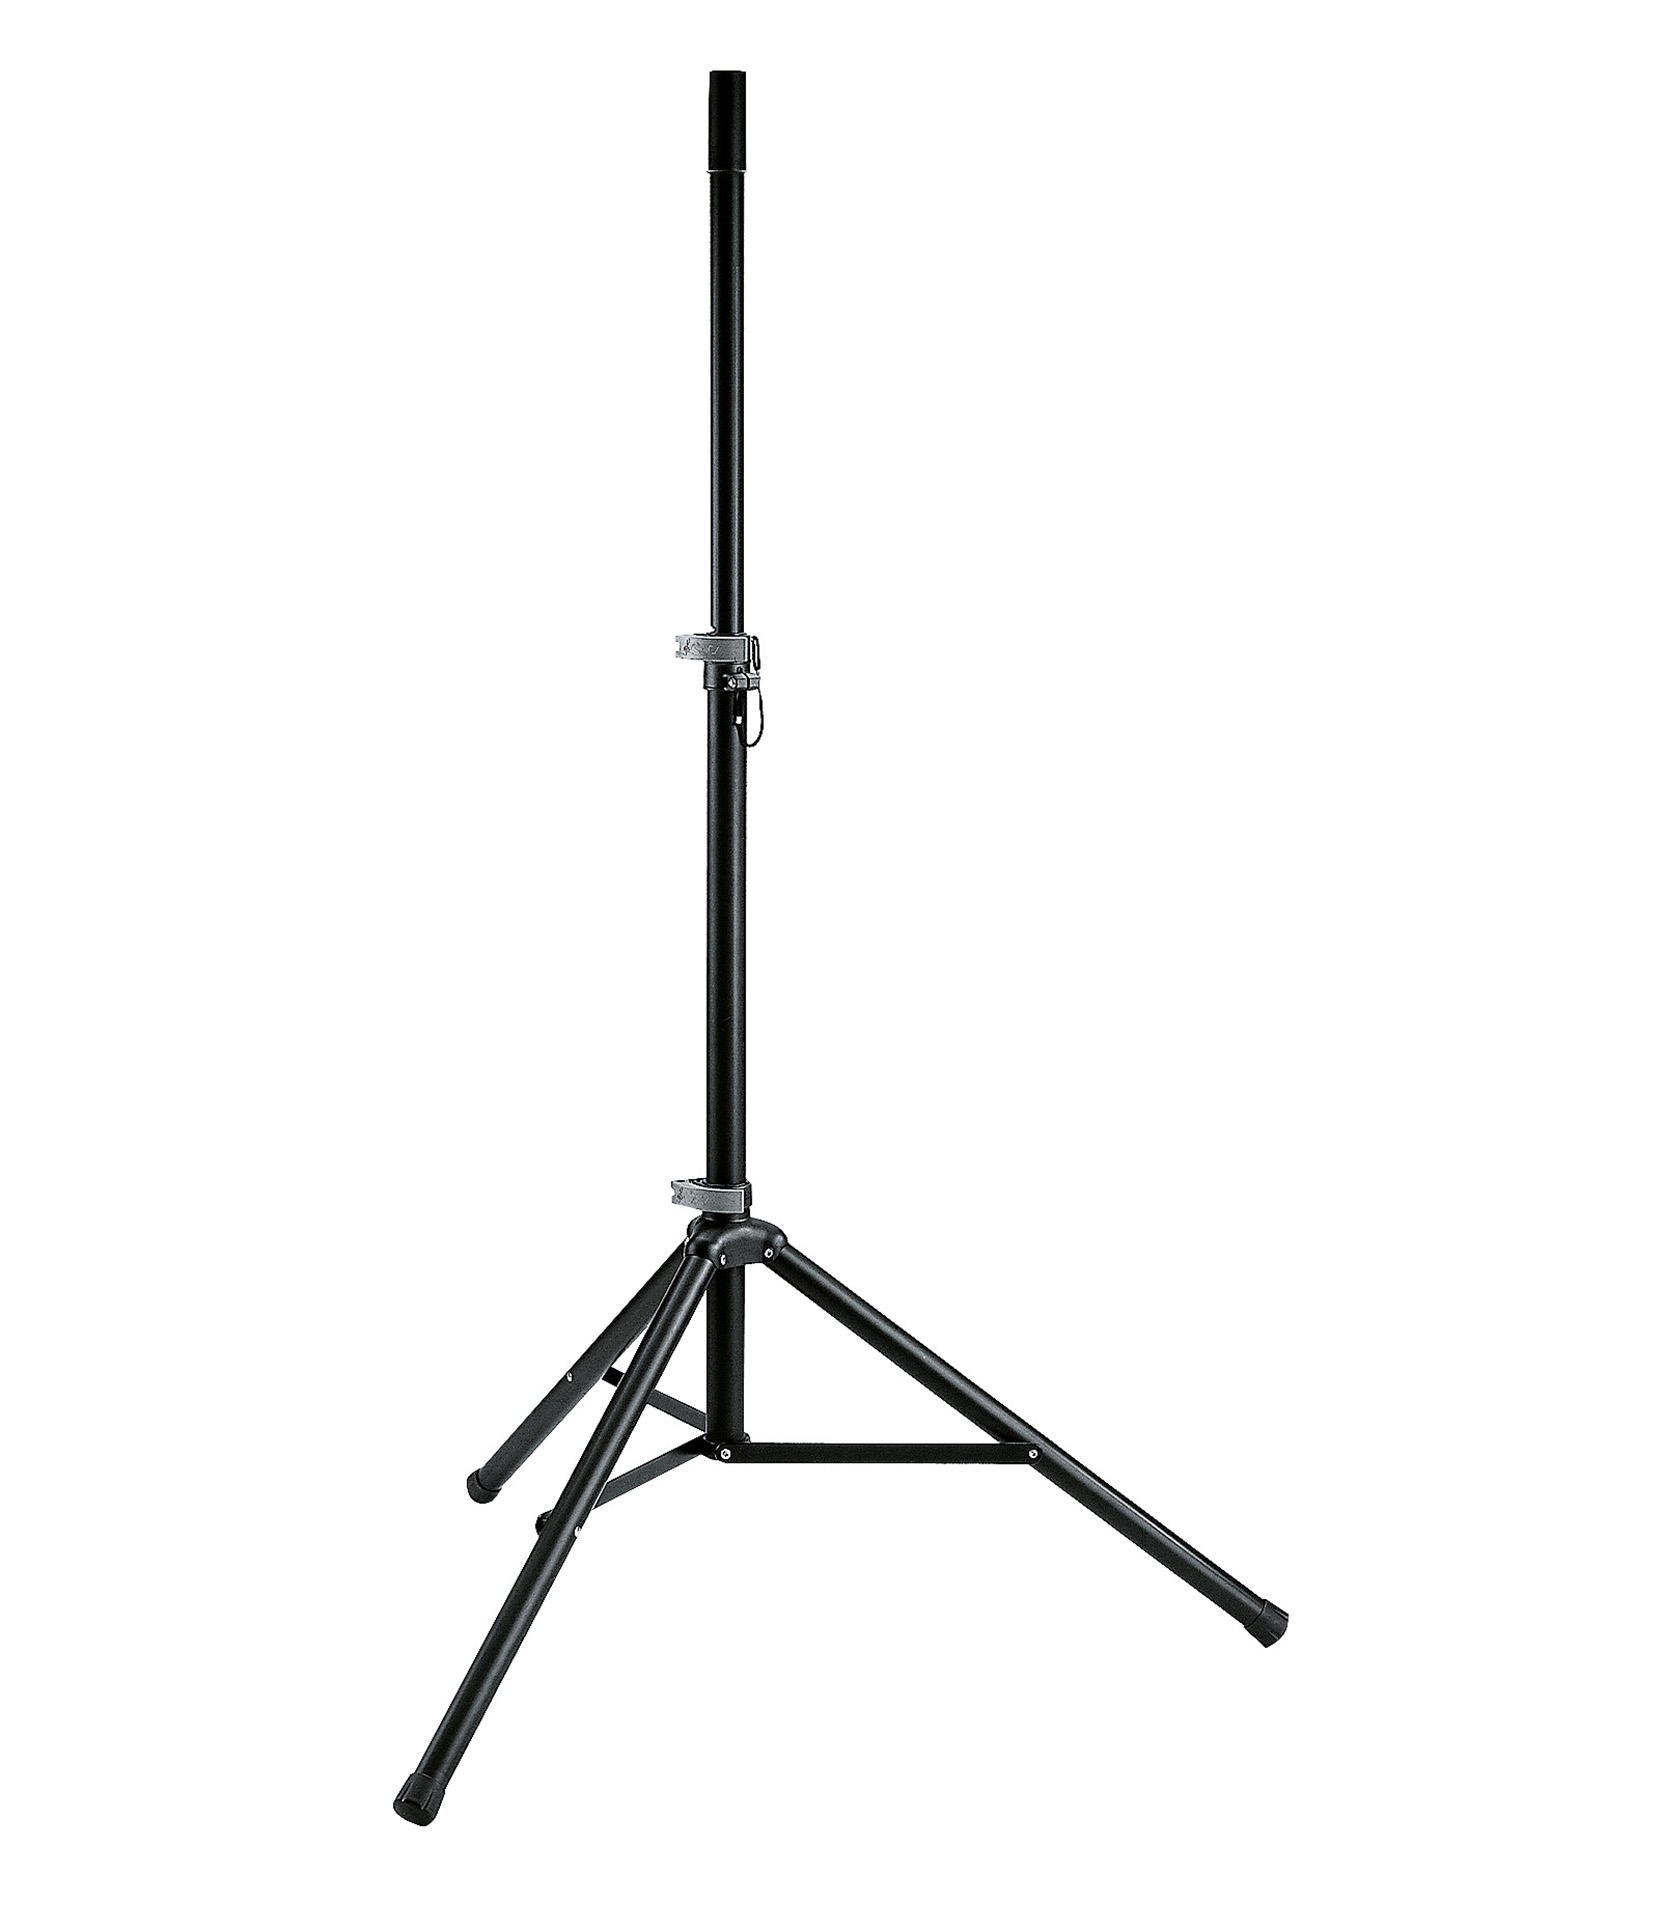 K&M - Speaker Stand Made of High Quality Aluminum - Melody House Musical Instruments